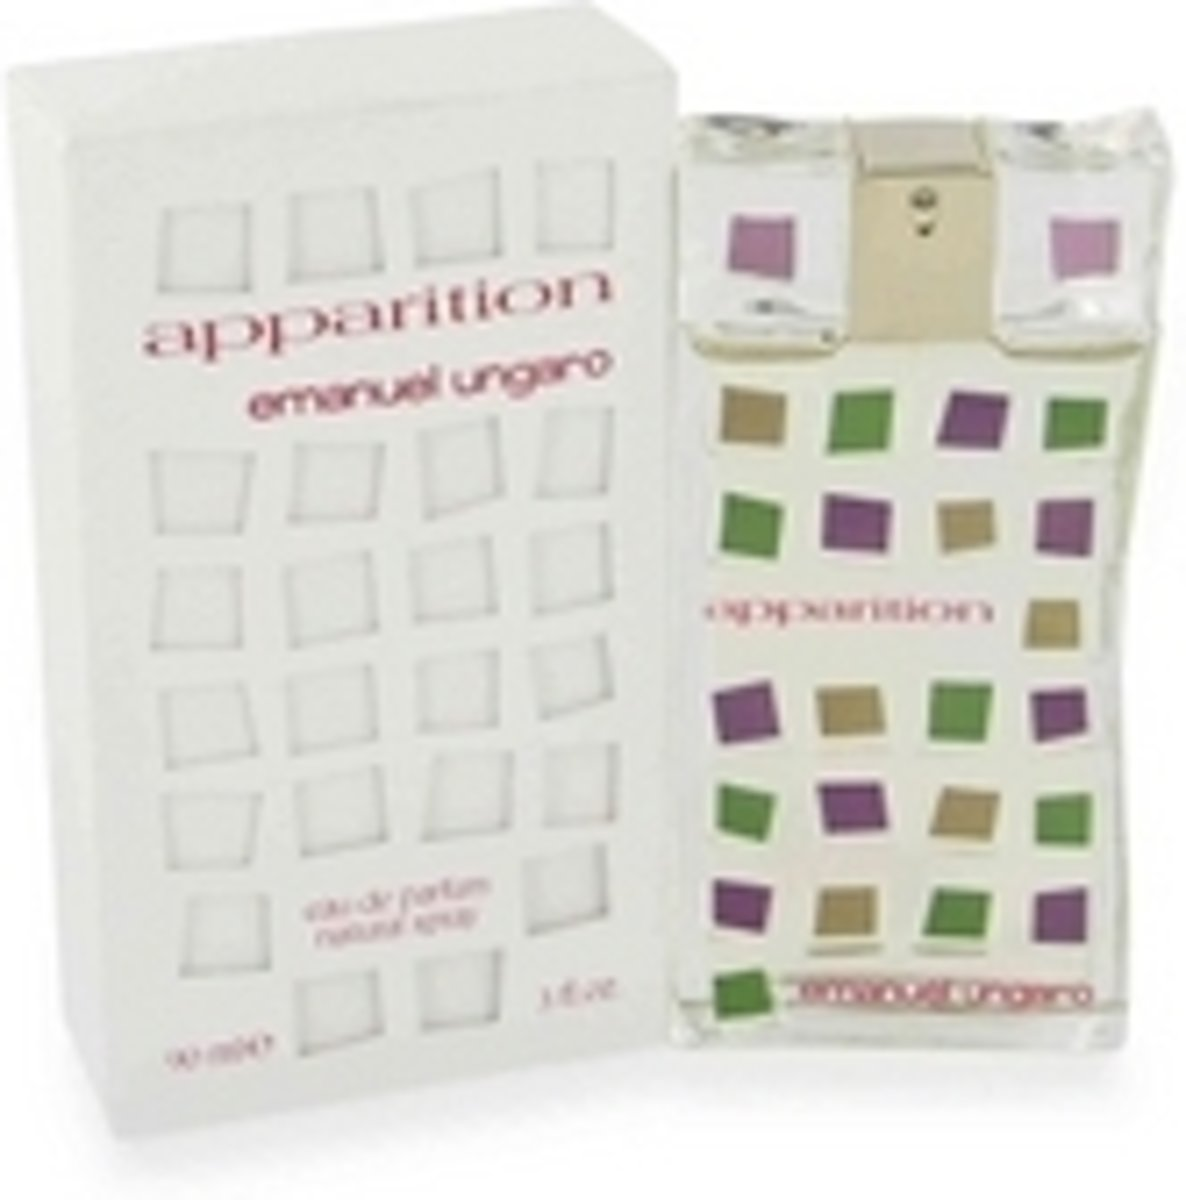 Ungaro Apparation for Women - 90 ml - Eau de parfum